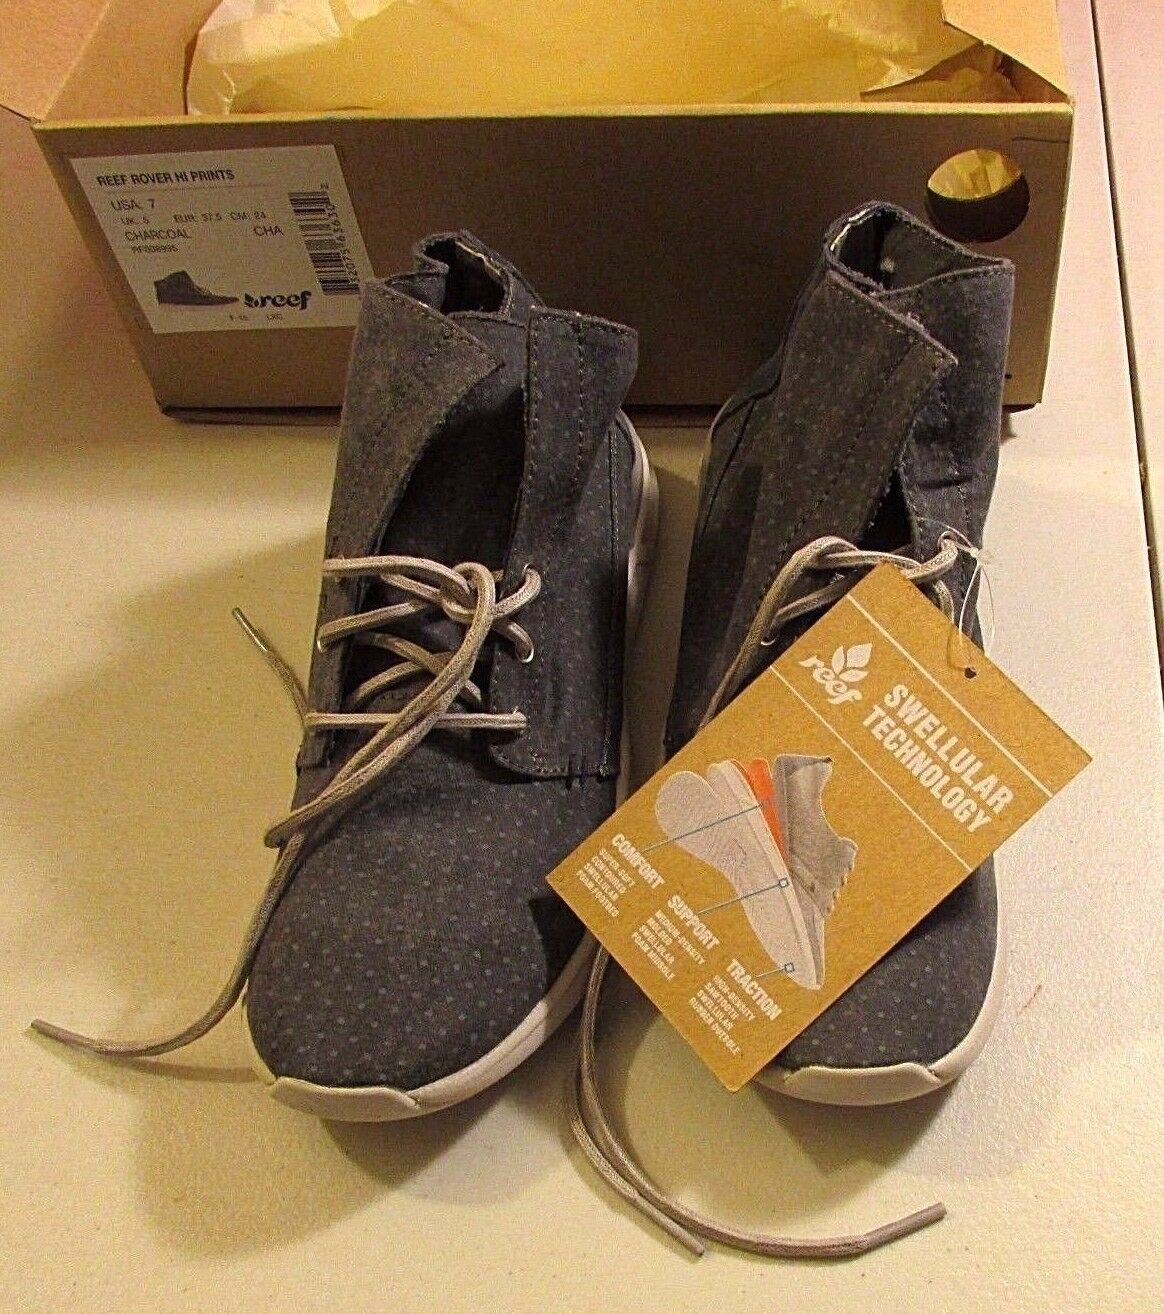 REEF ROVER CHARCOAL HI PRINTS WOMENS WOMENS WOMENS SIZE 7 BRAND NEW IN BOX- HARD TO FIND e9af23